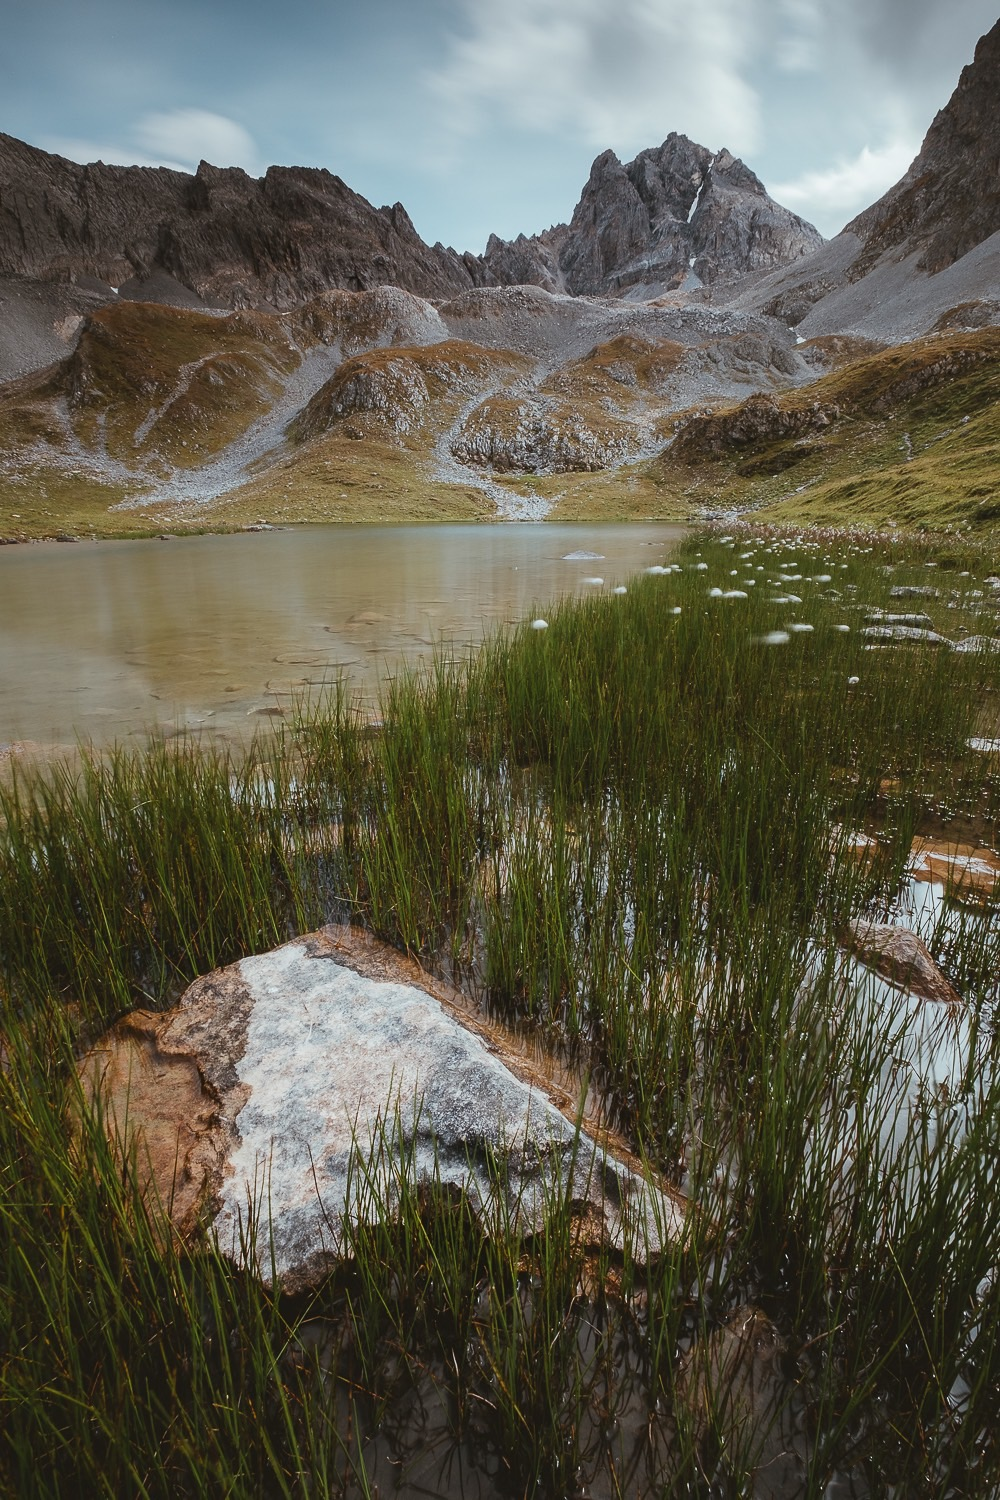 0003-france-vanoise-lac-montagne-20180909153729-compress.jpg